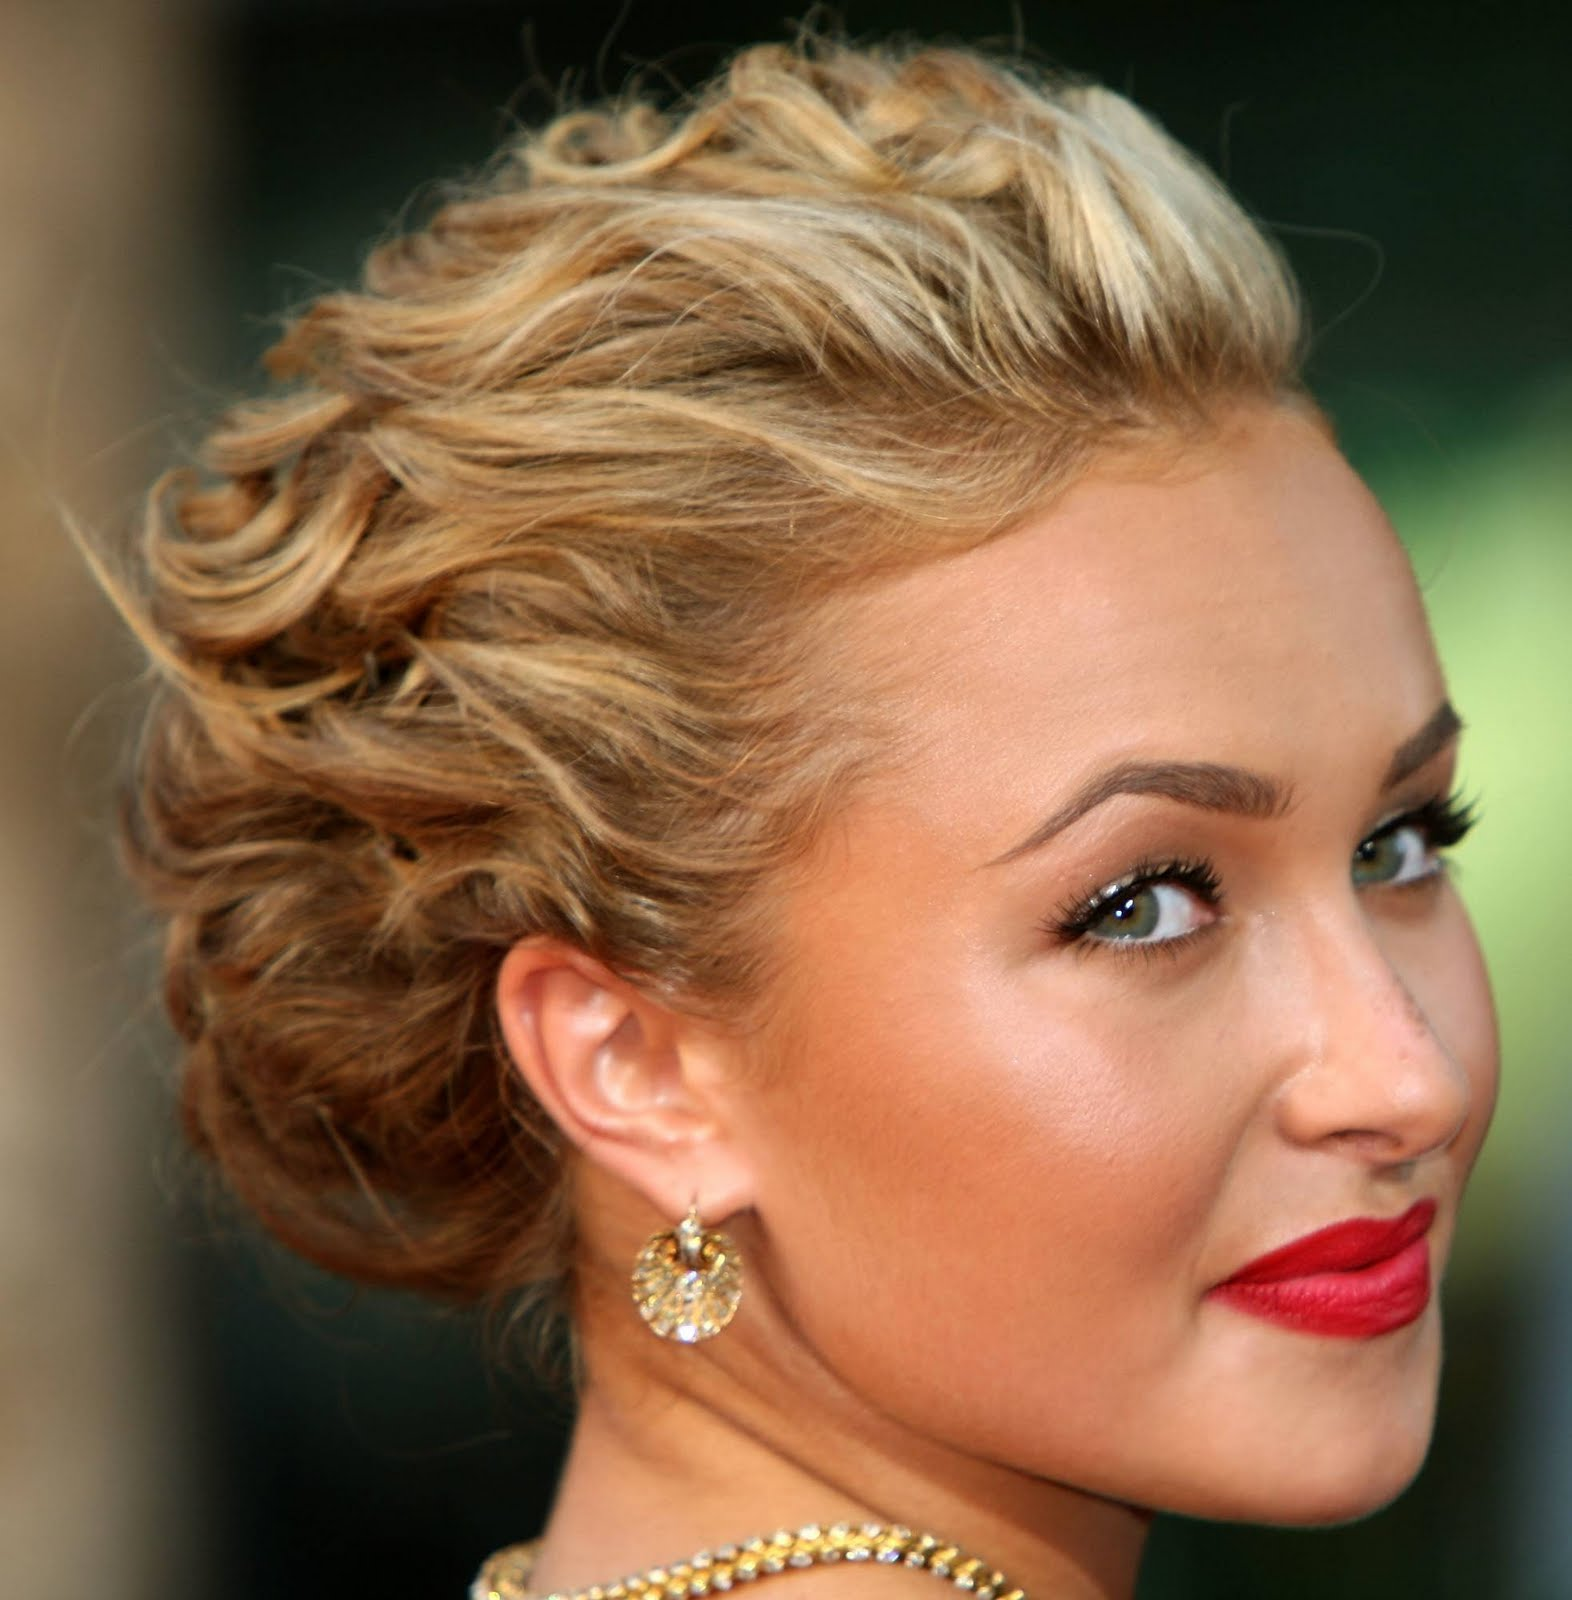 Naturally curly hair updos 100 images best 25 wedding naturally curly hair updos naturally curly hair updos modern hairstyles in the us photo pmusecretfo Choice Image